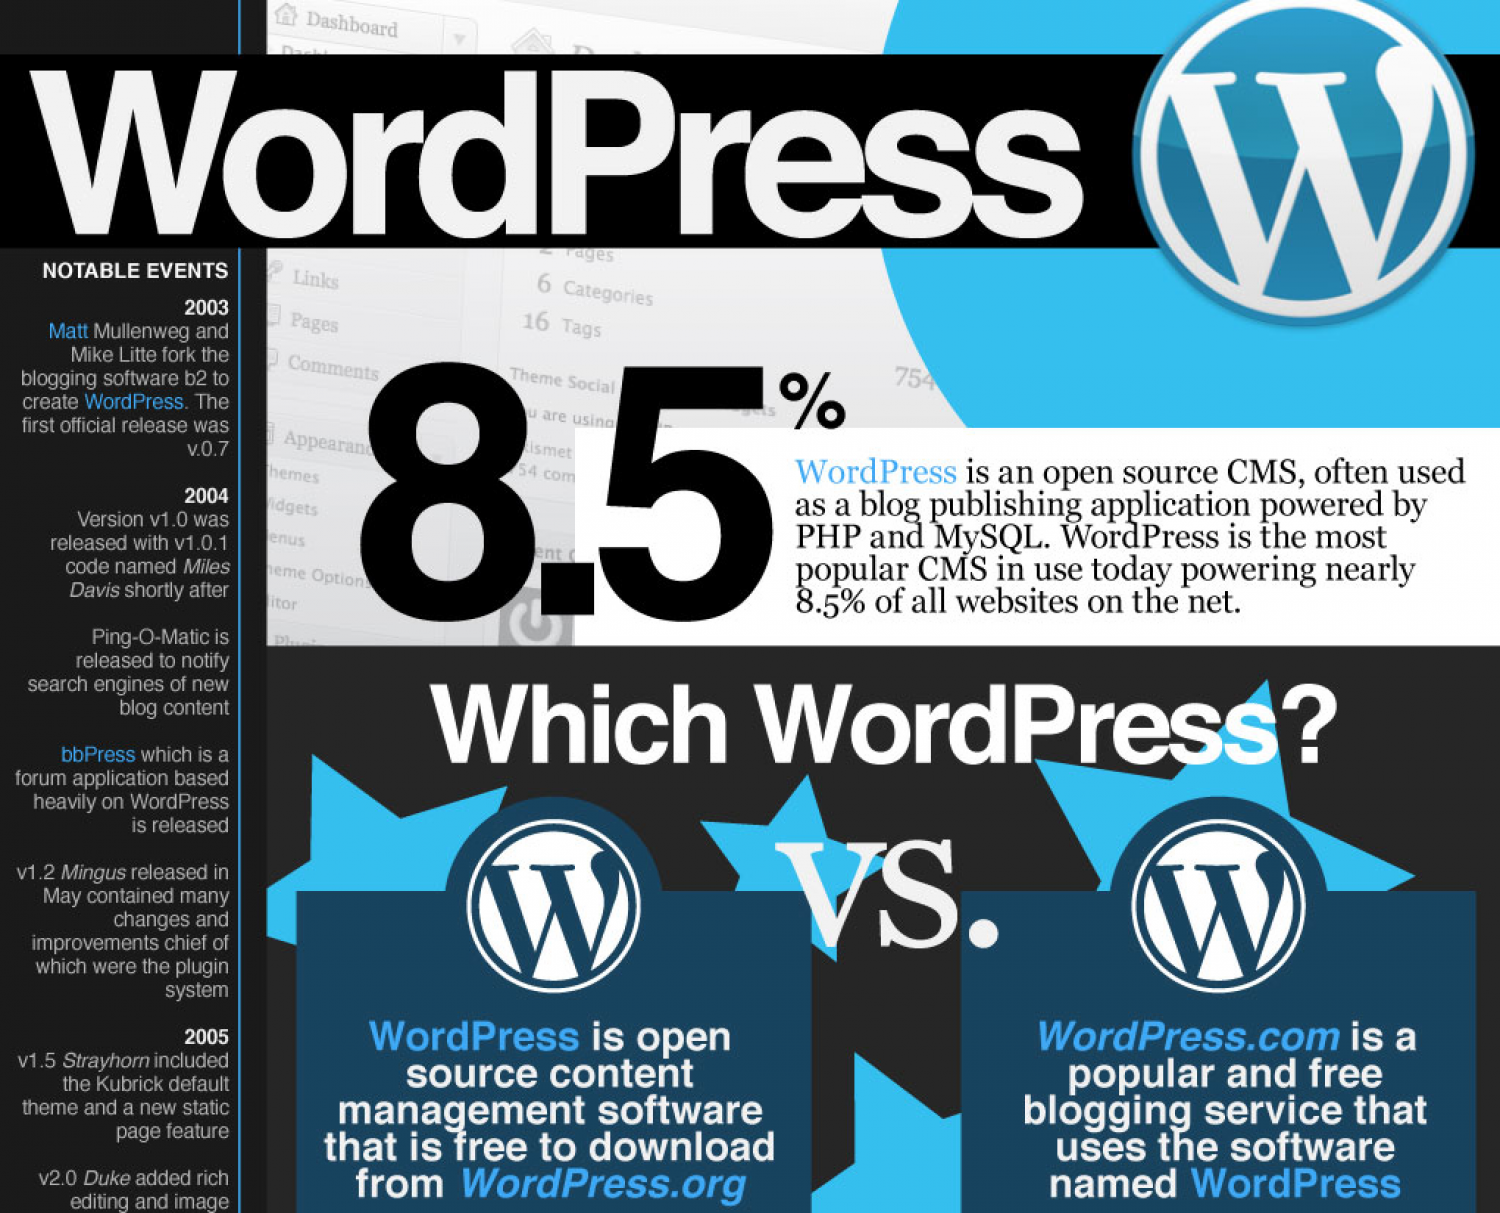 The Prolific WordPress Infographic